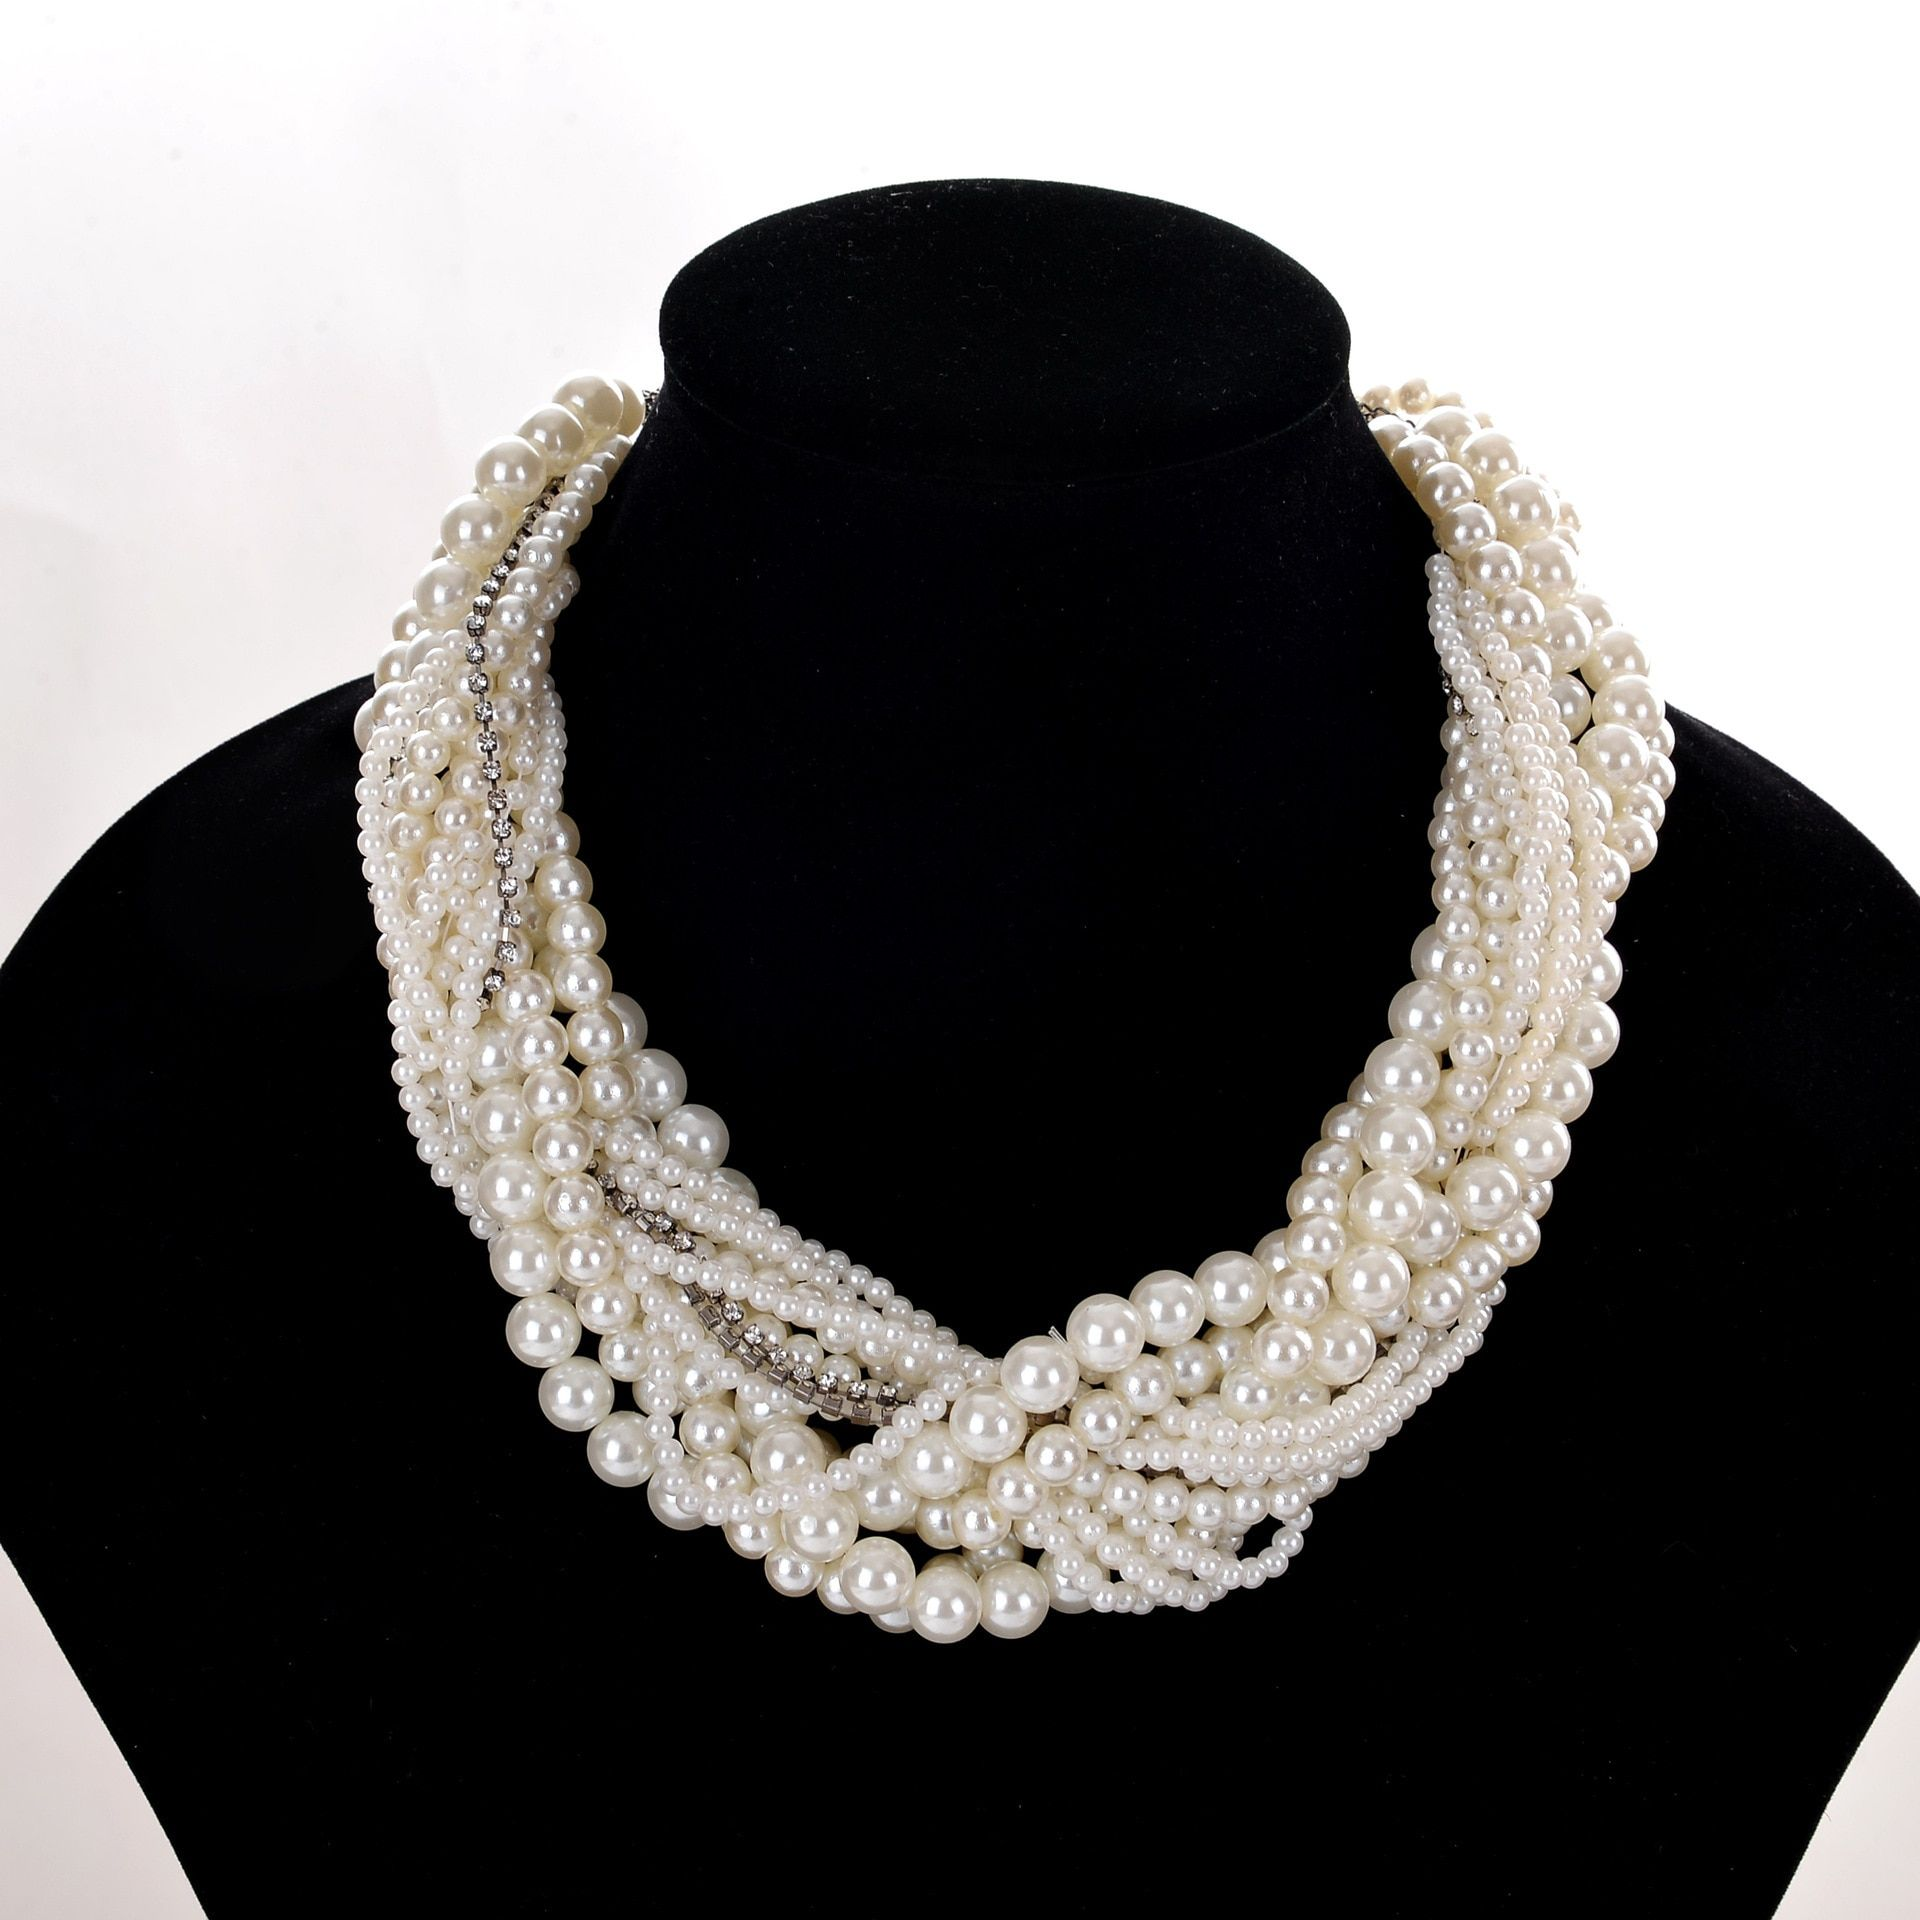 2017 Time-limited Round Collares Maxi Necklace Collier New Fashion Europe And The Big Name Of Old Pearl Necklace Cz90023